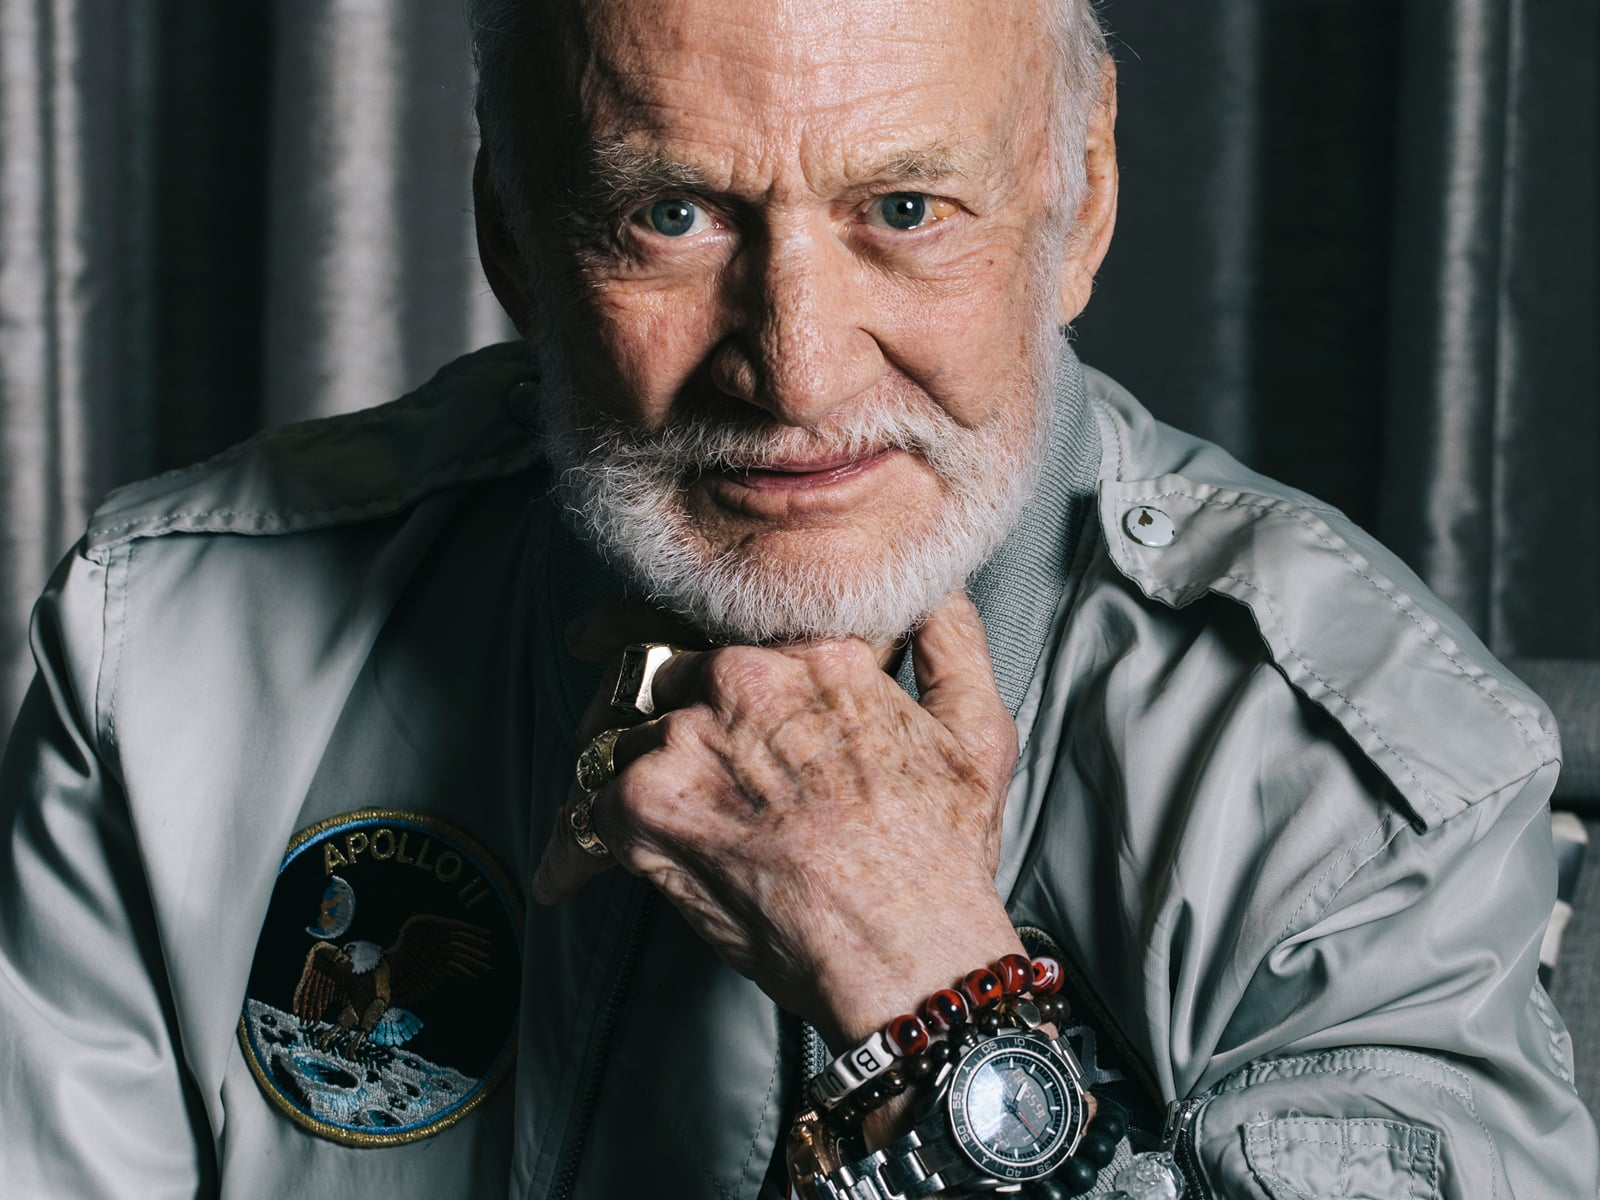 Buzz Aldrin in his astronauts suit faces the camera